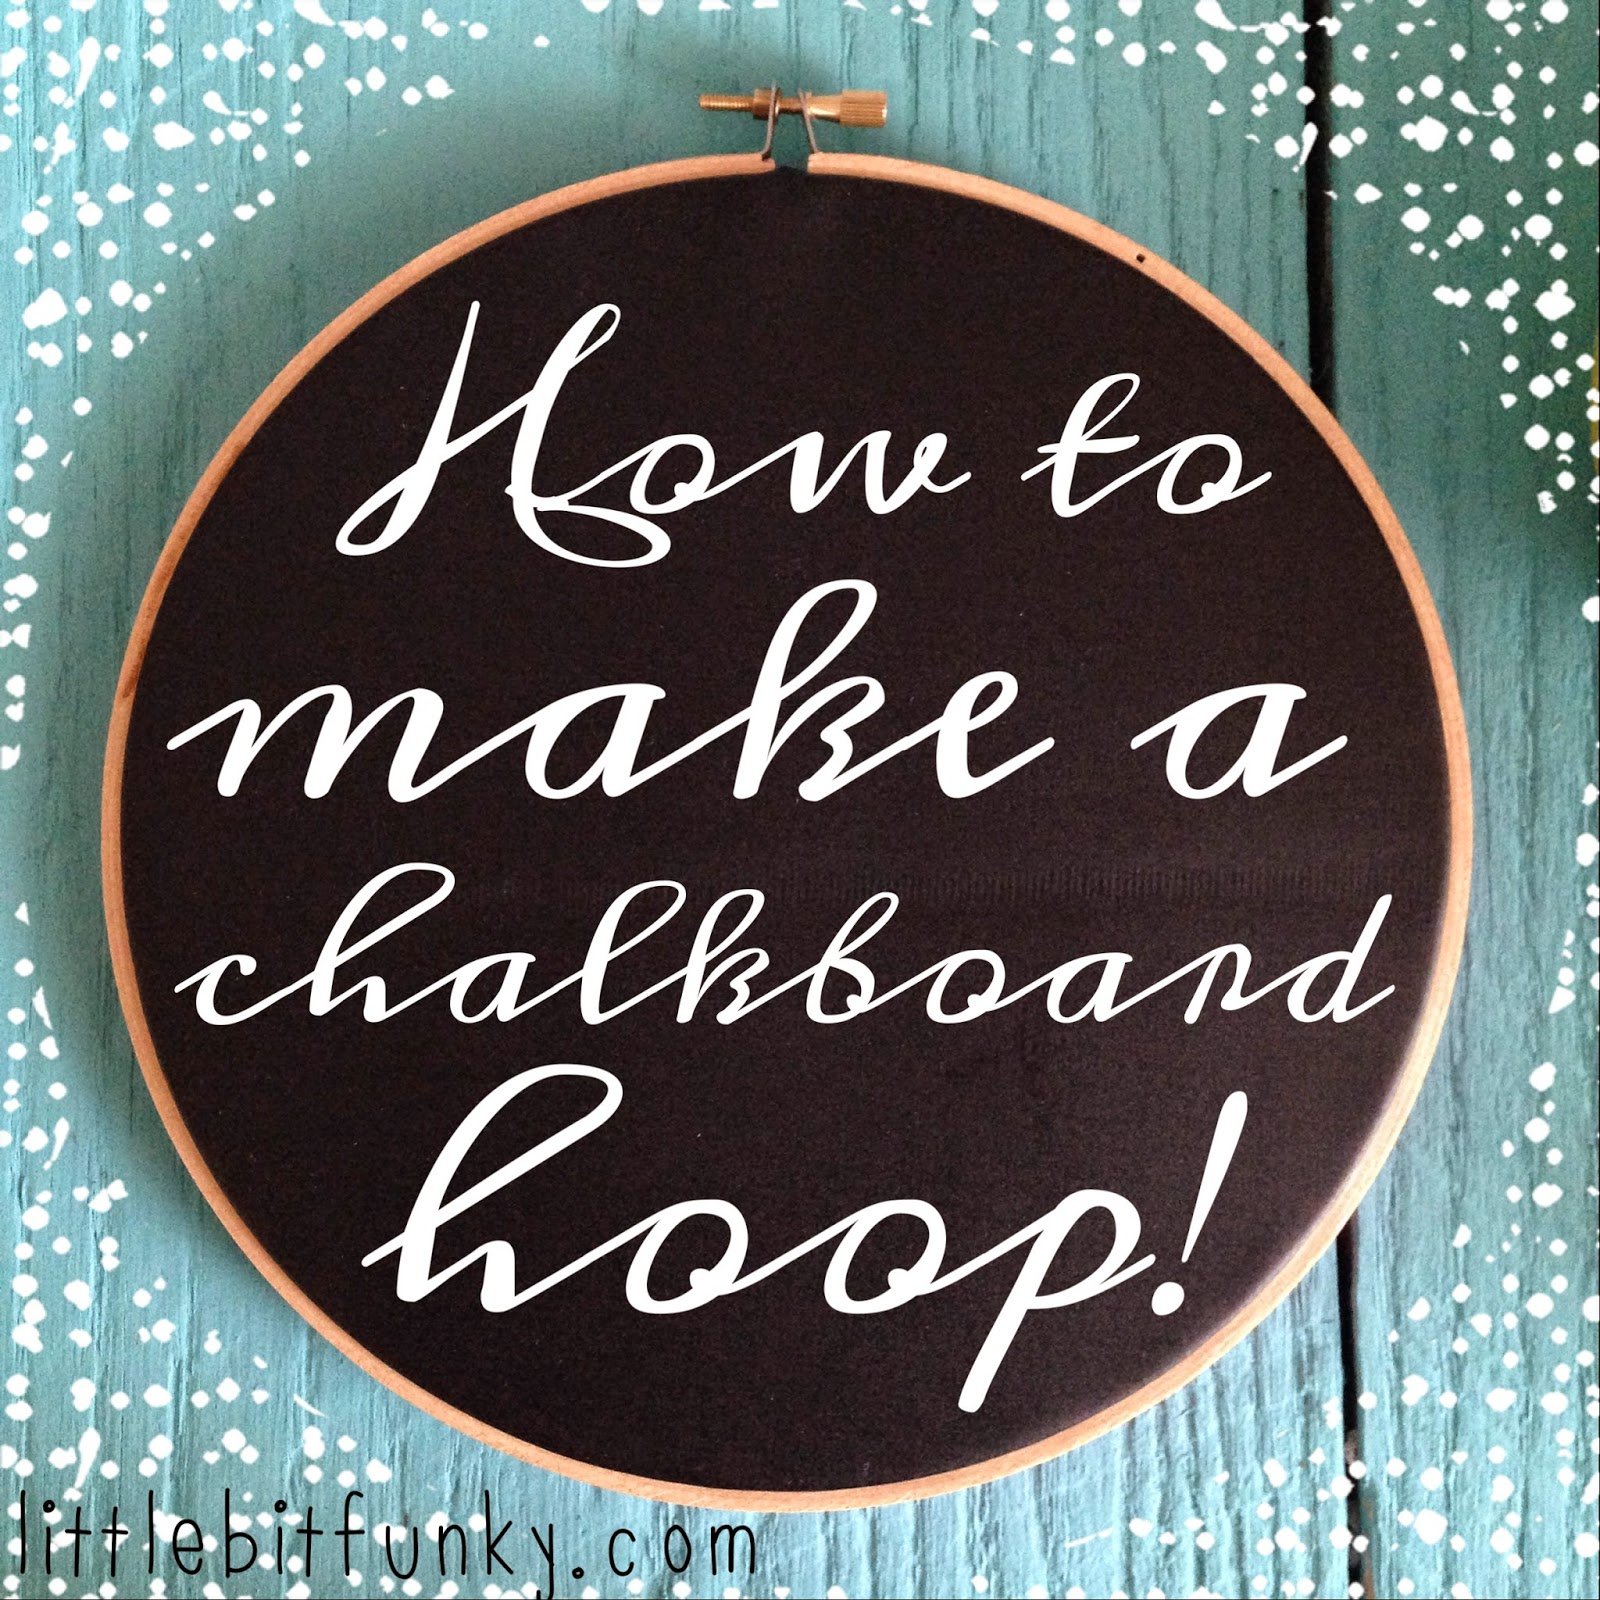 20 minute crafter {how to make a chalkboard hoop}